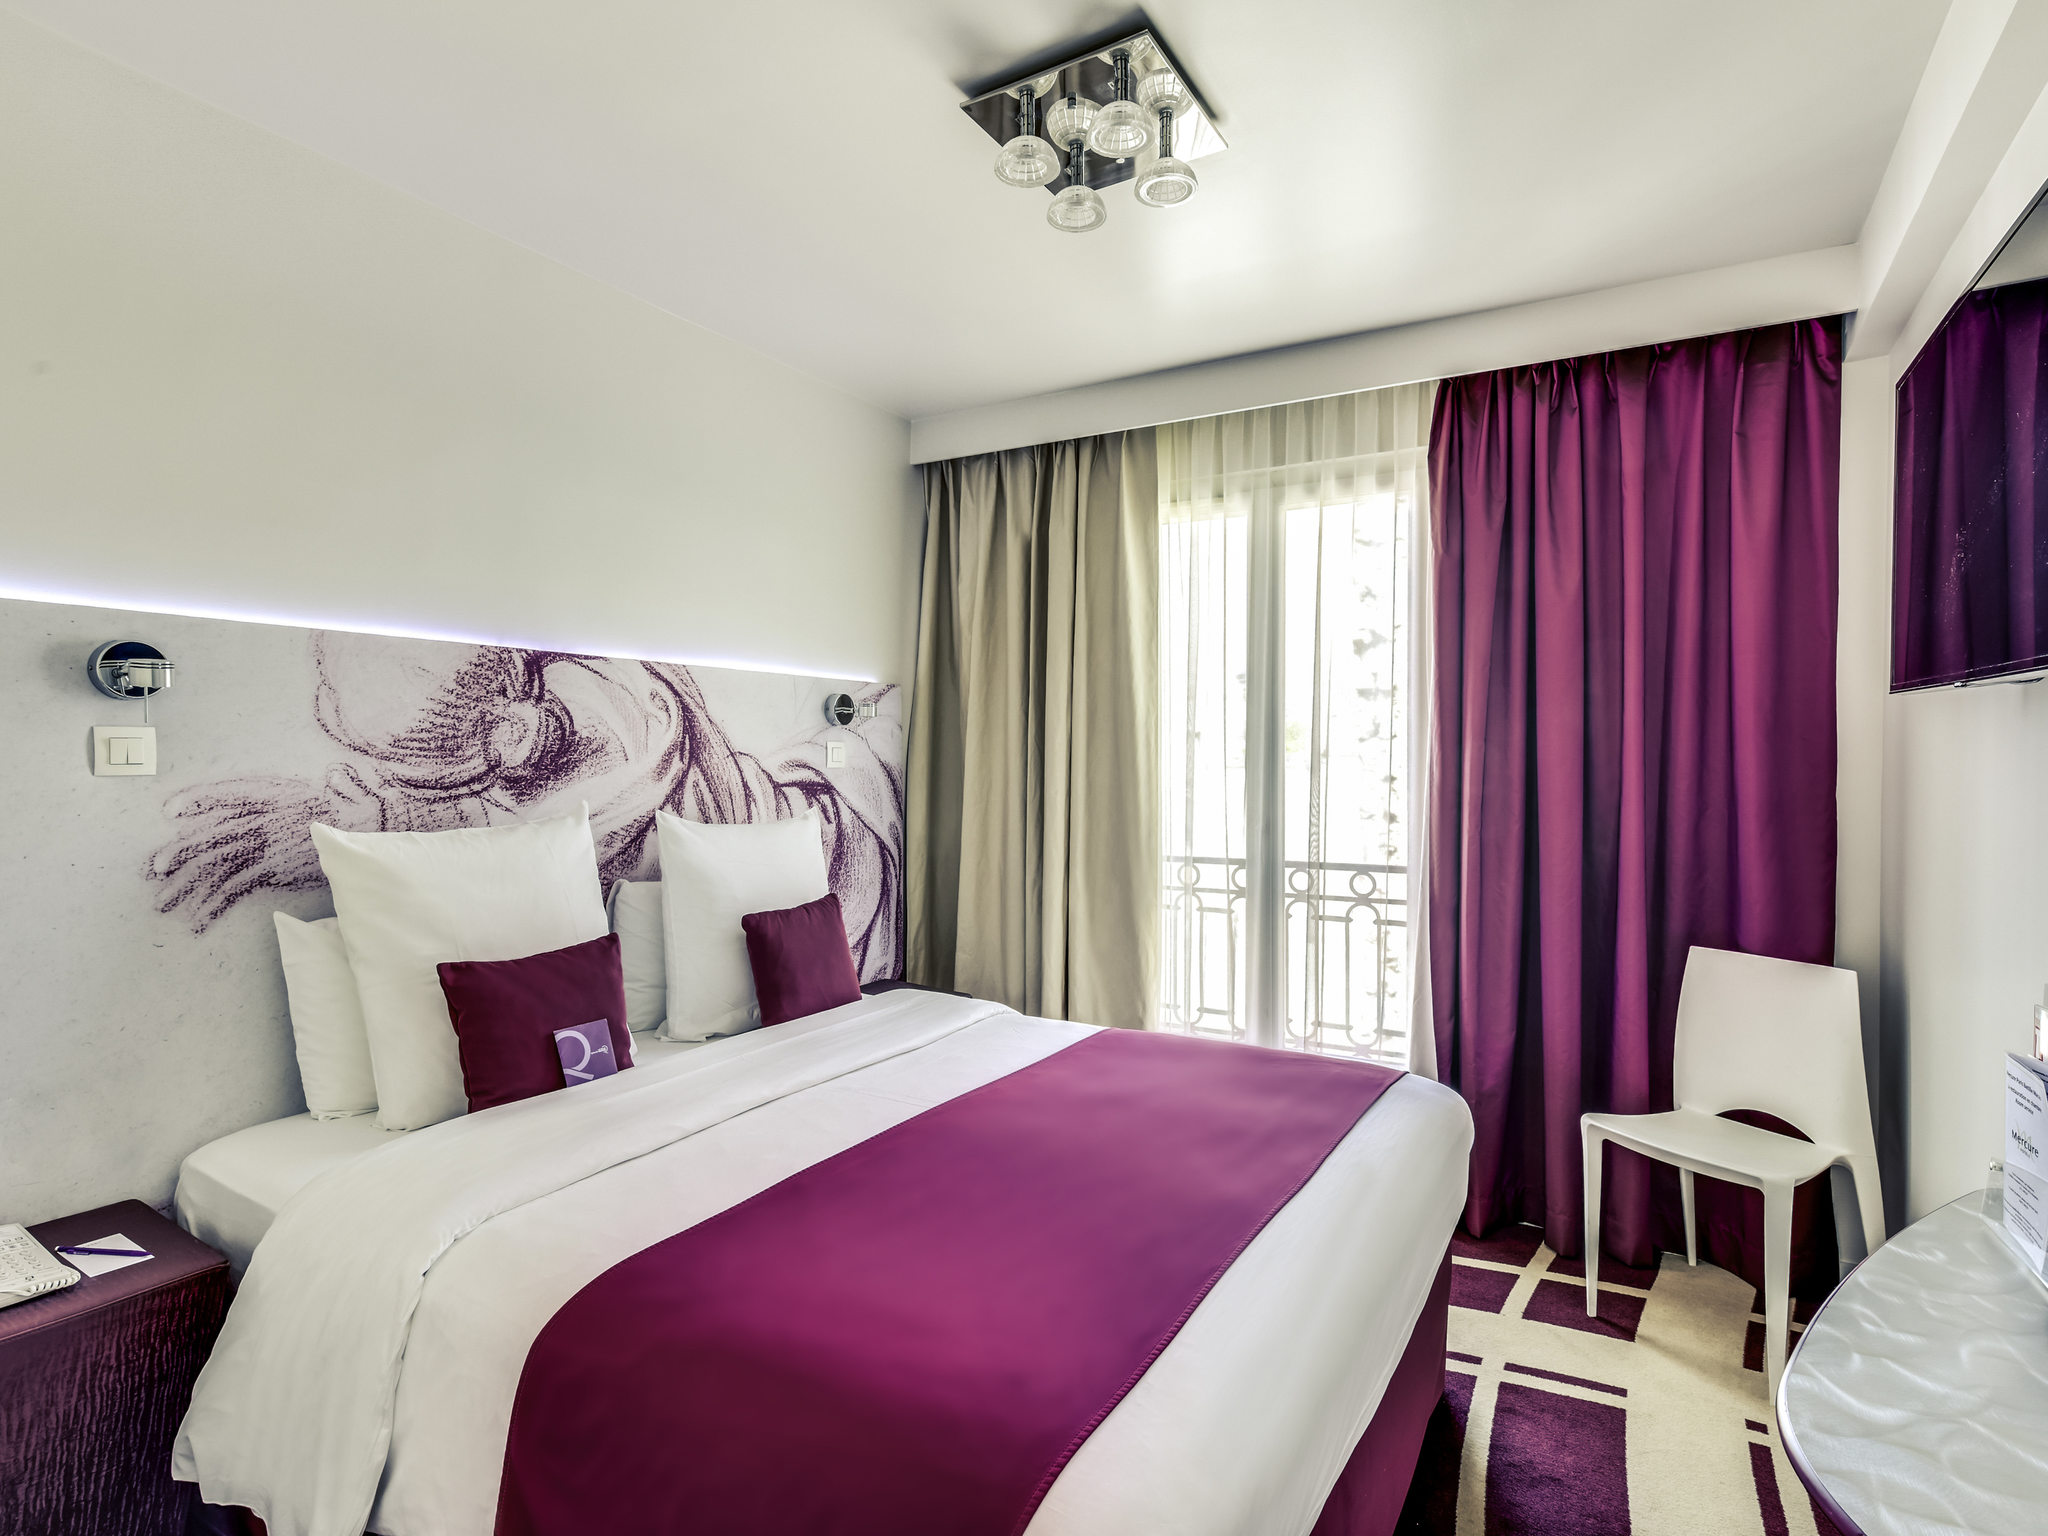 Hotel in paris mercure paris bastille marais hotel for Hotel marais paris